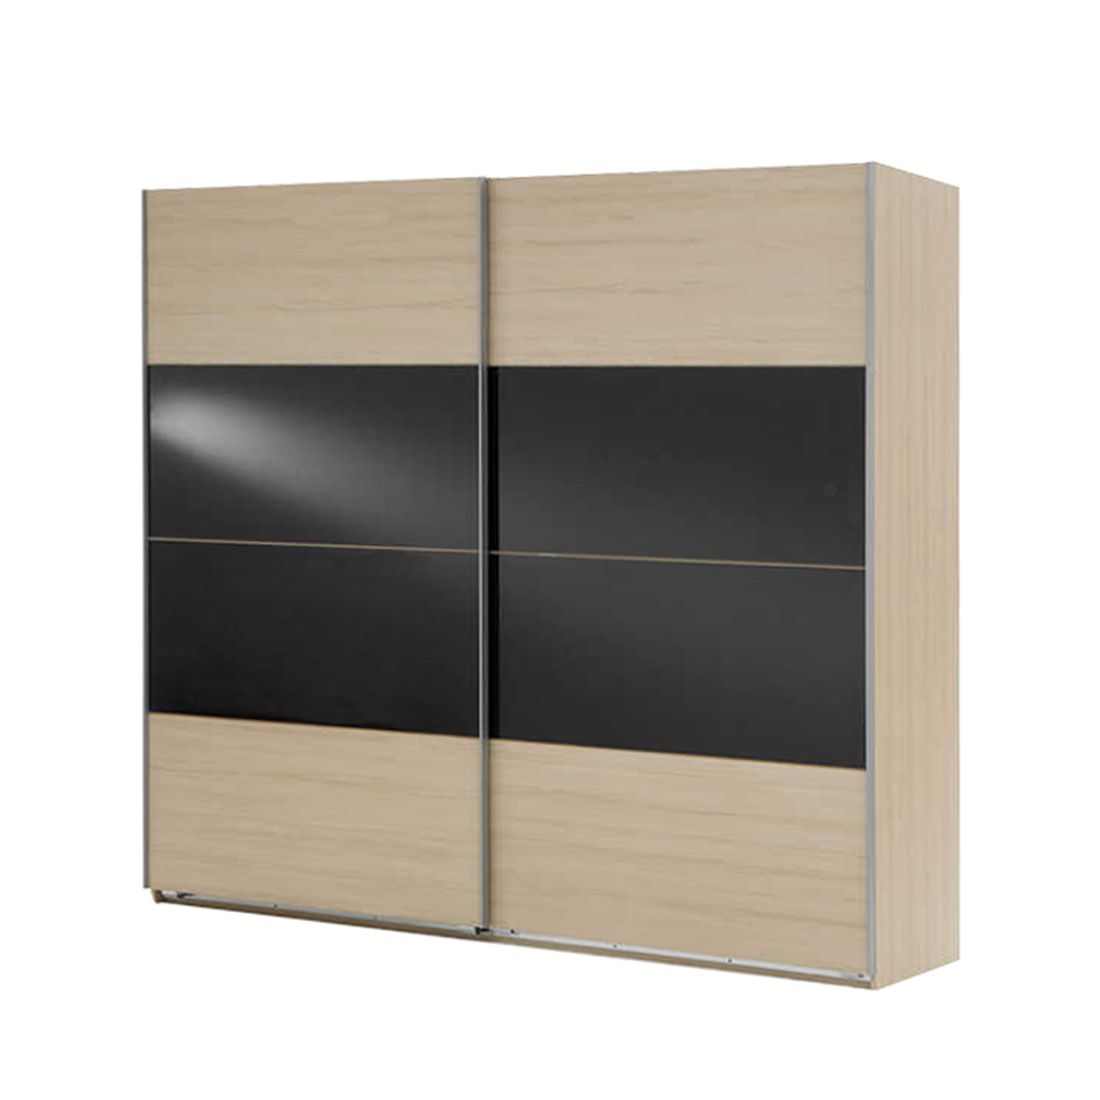 schwebet renschrank kingston ac canyon buche grauglas breite 180 cm schrank. Black Bedroom Furniture Sets. Home Design Ideas